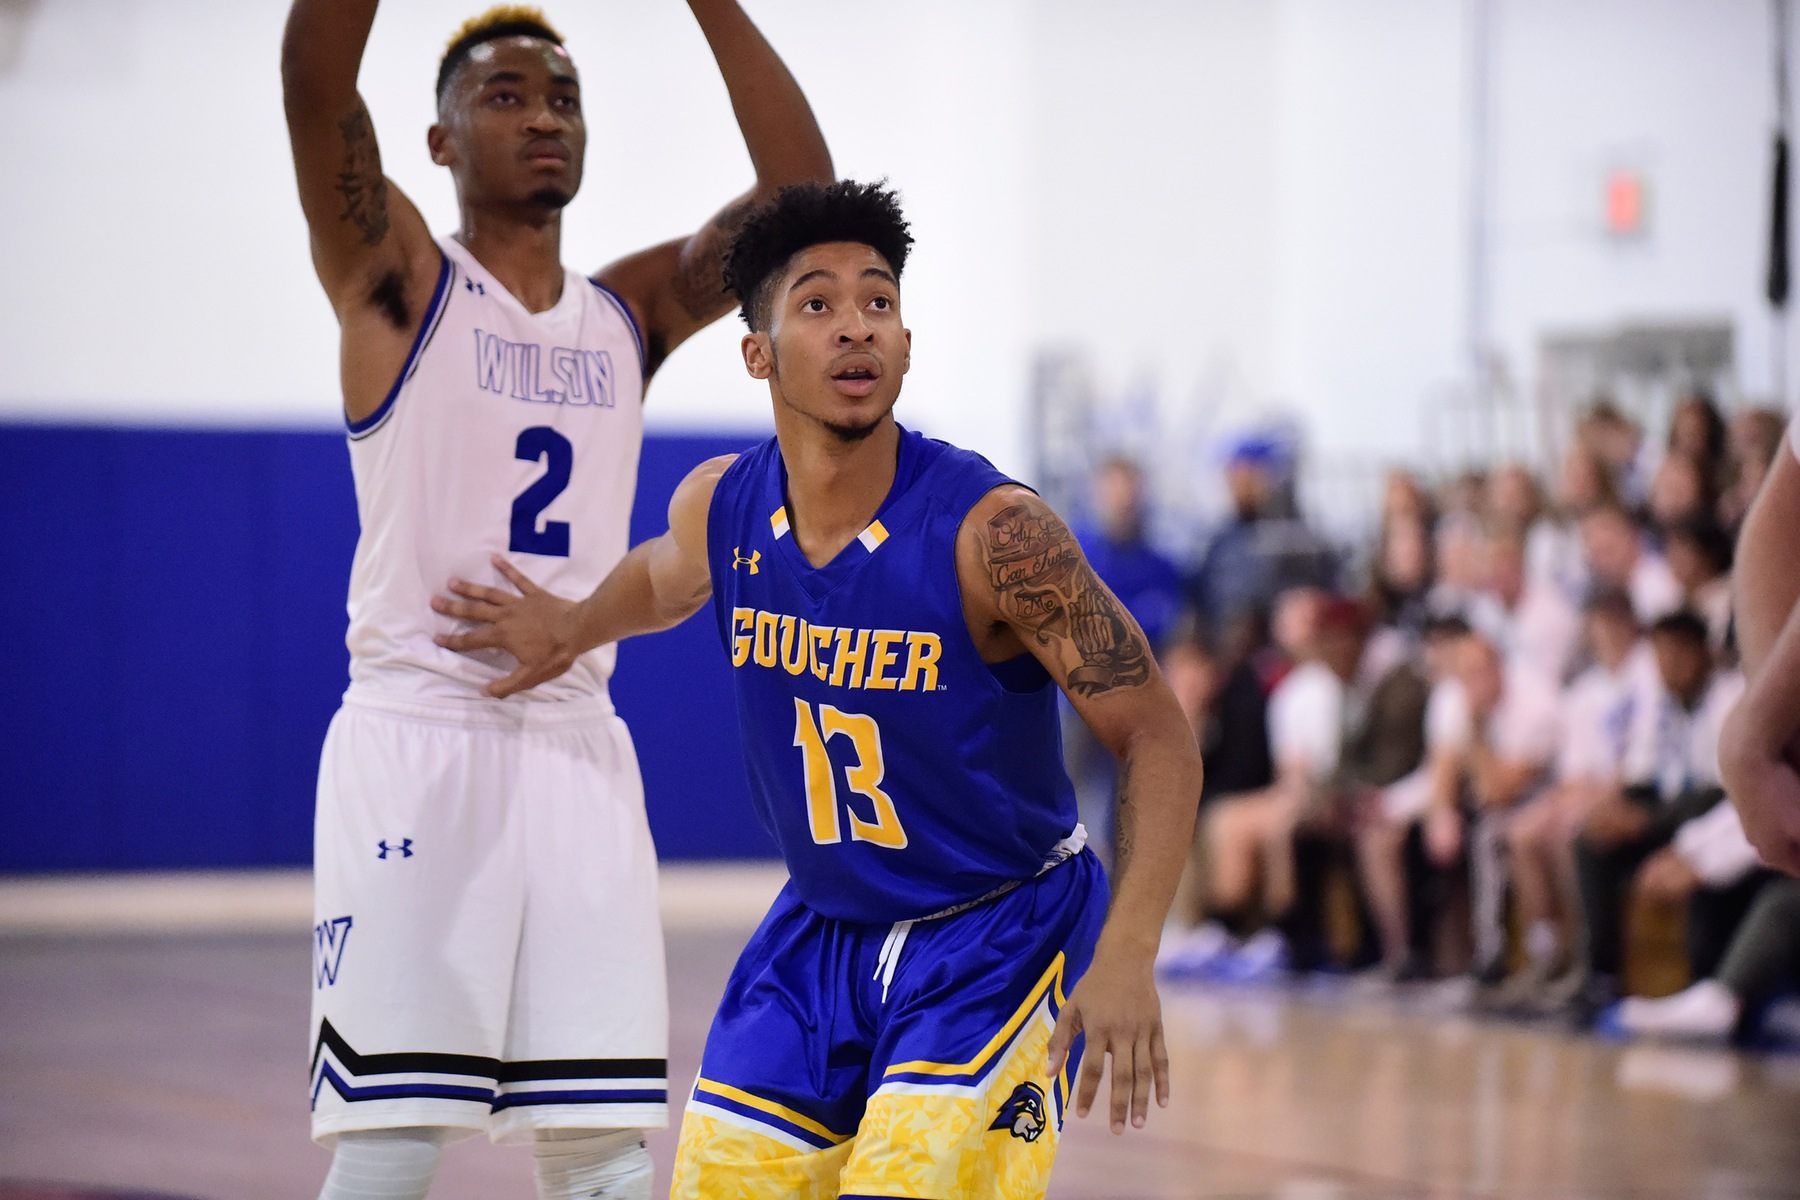 Men's Basketball Suffers First Loss at Home This Season, 77-60